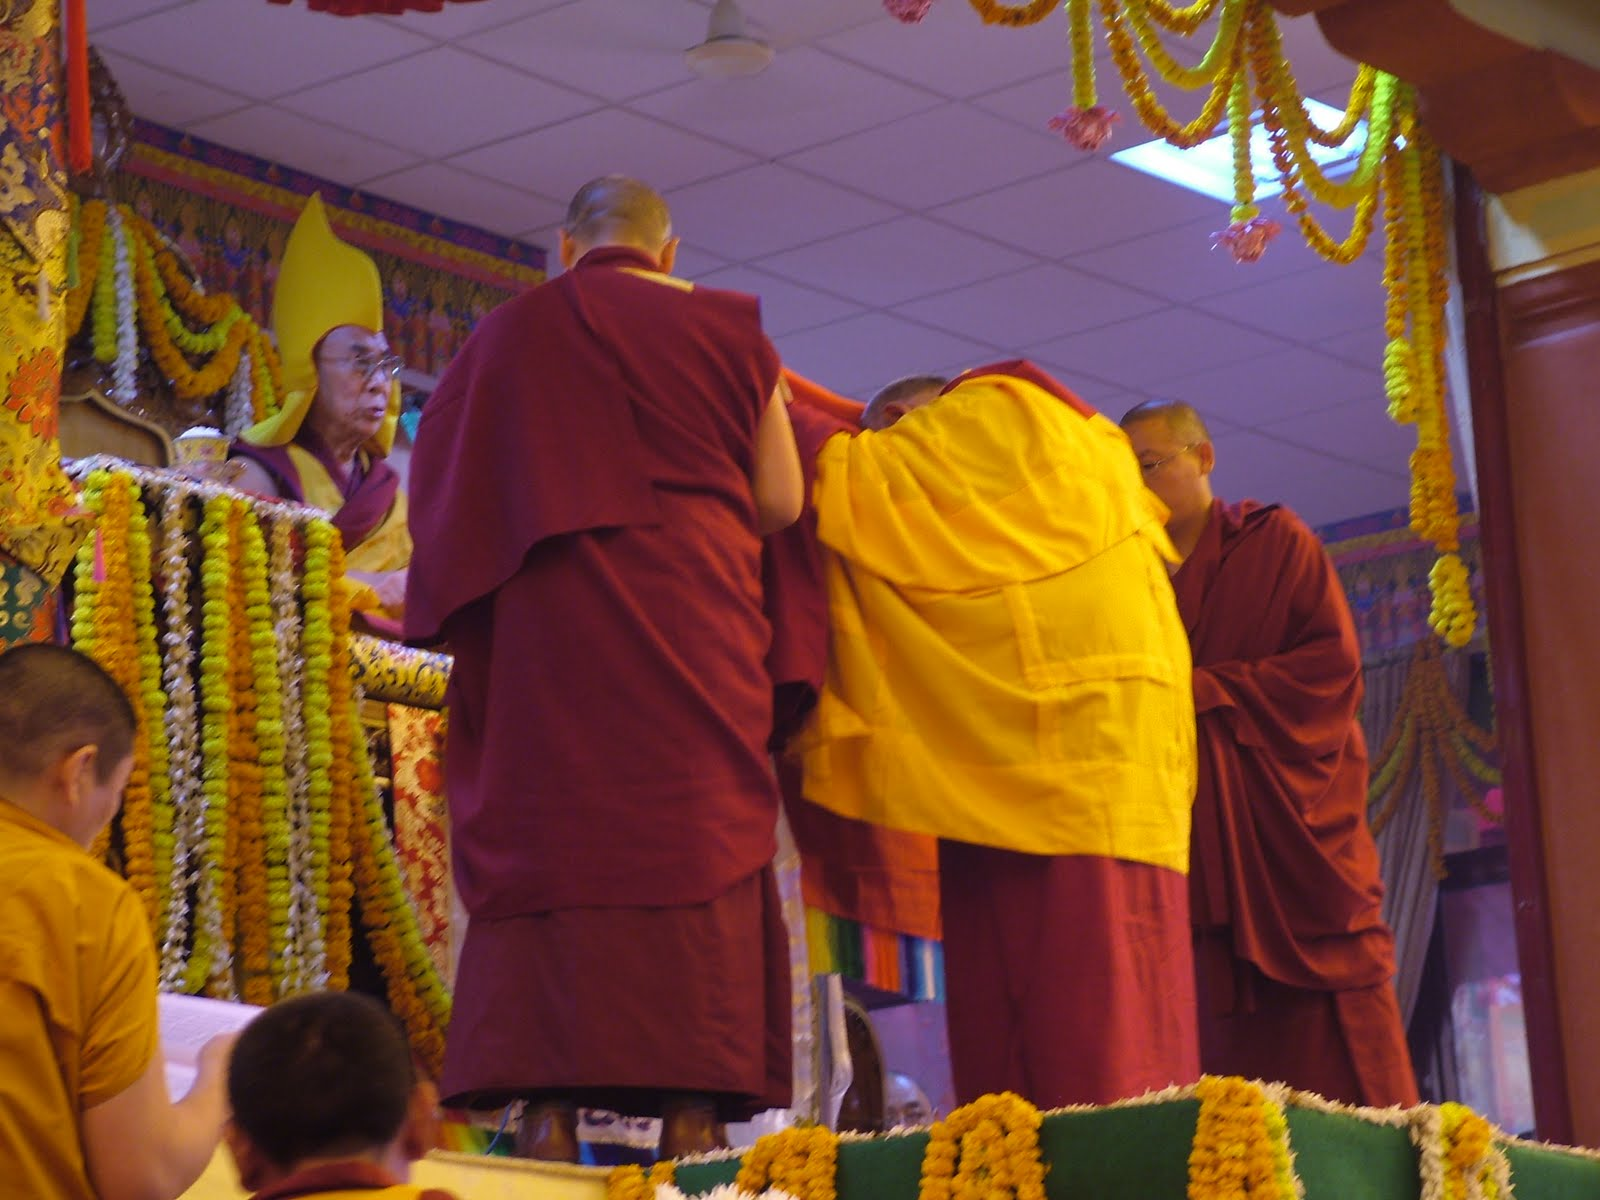 Lama Zopa Rinpoche offering during long life puja offered to His Holiness the Dalai Lama in Saranath January 2008.